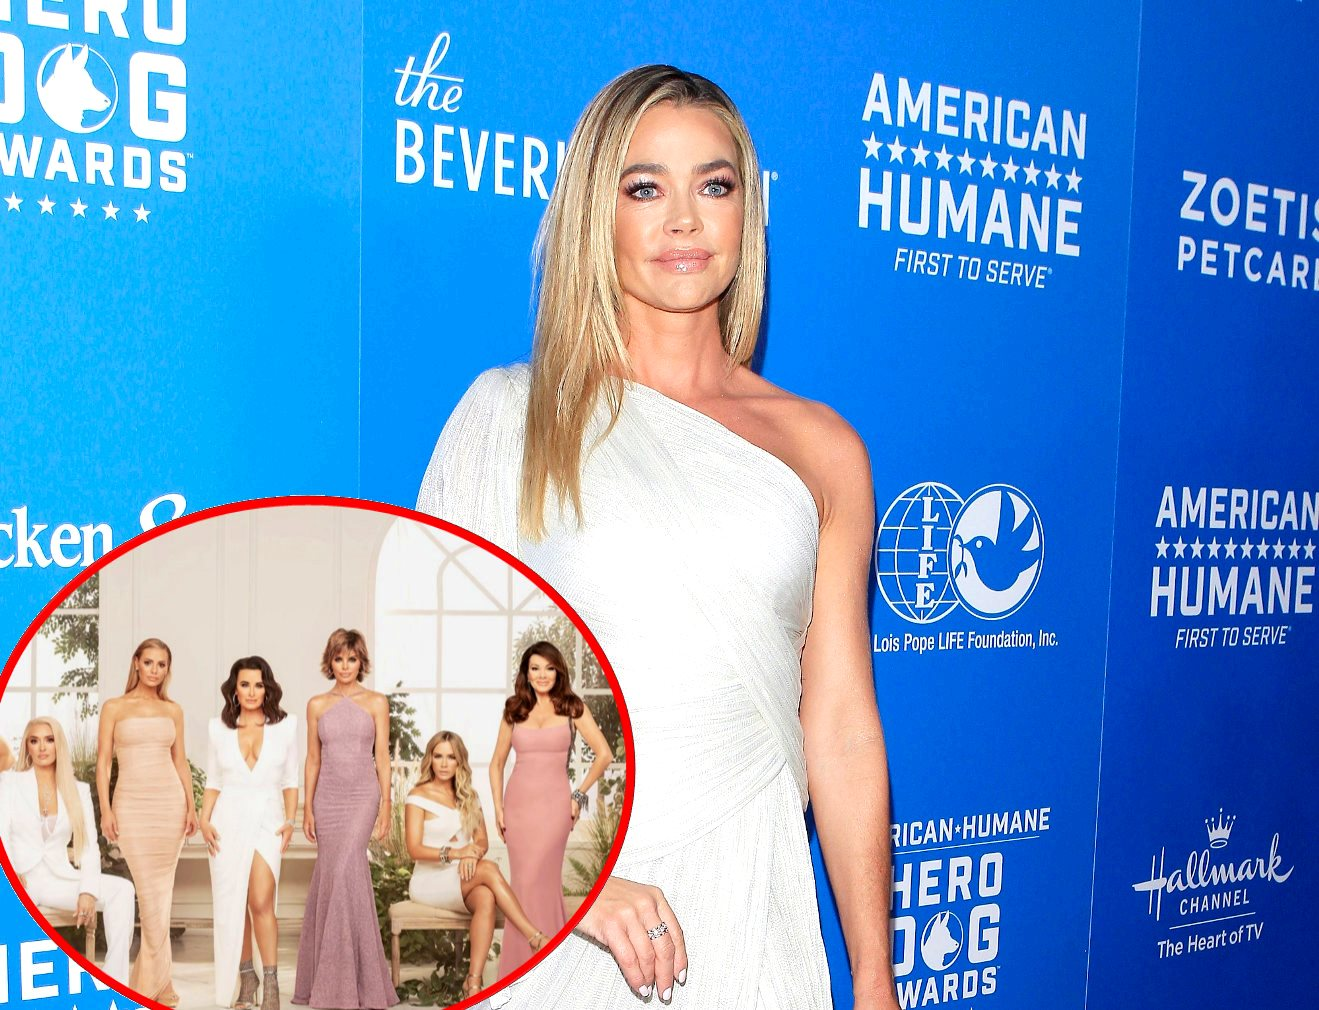 Denise Richards Reveals Which RHOBH Co-Star Acts Inauthentic, Plus She Explains Why Lisa Vanderpump Should Apologize for Puppy Gate